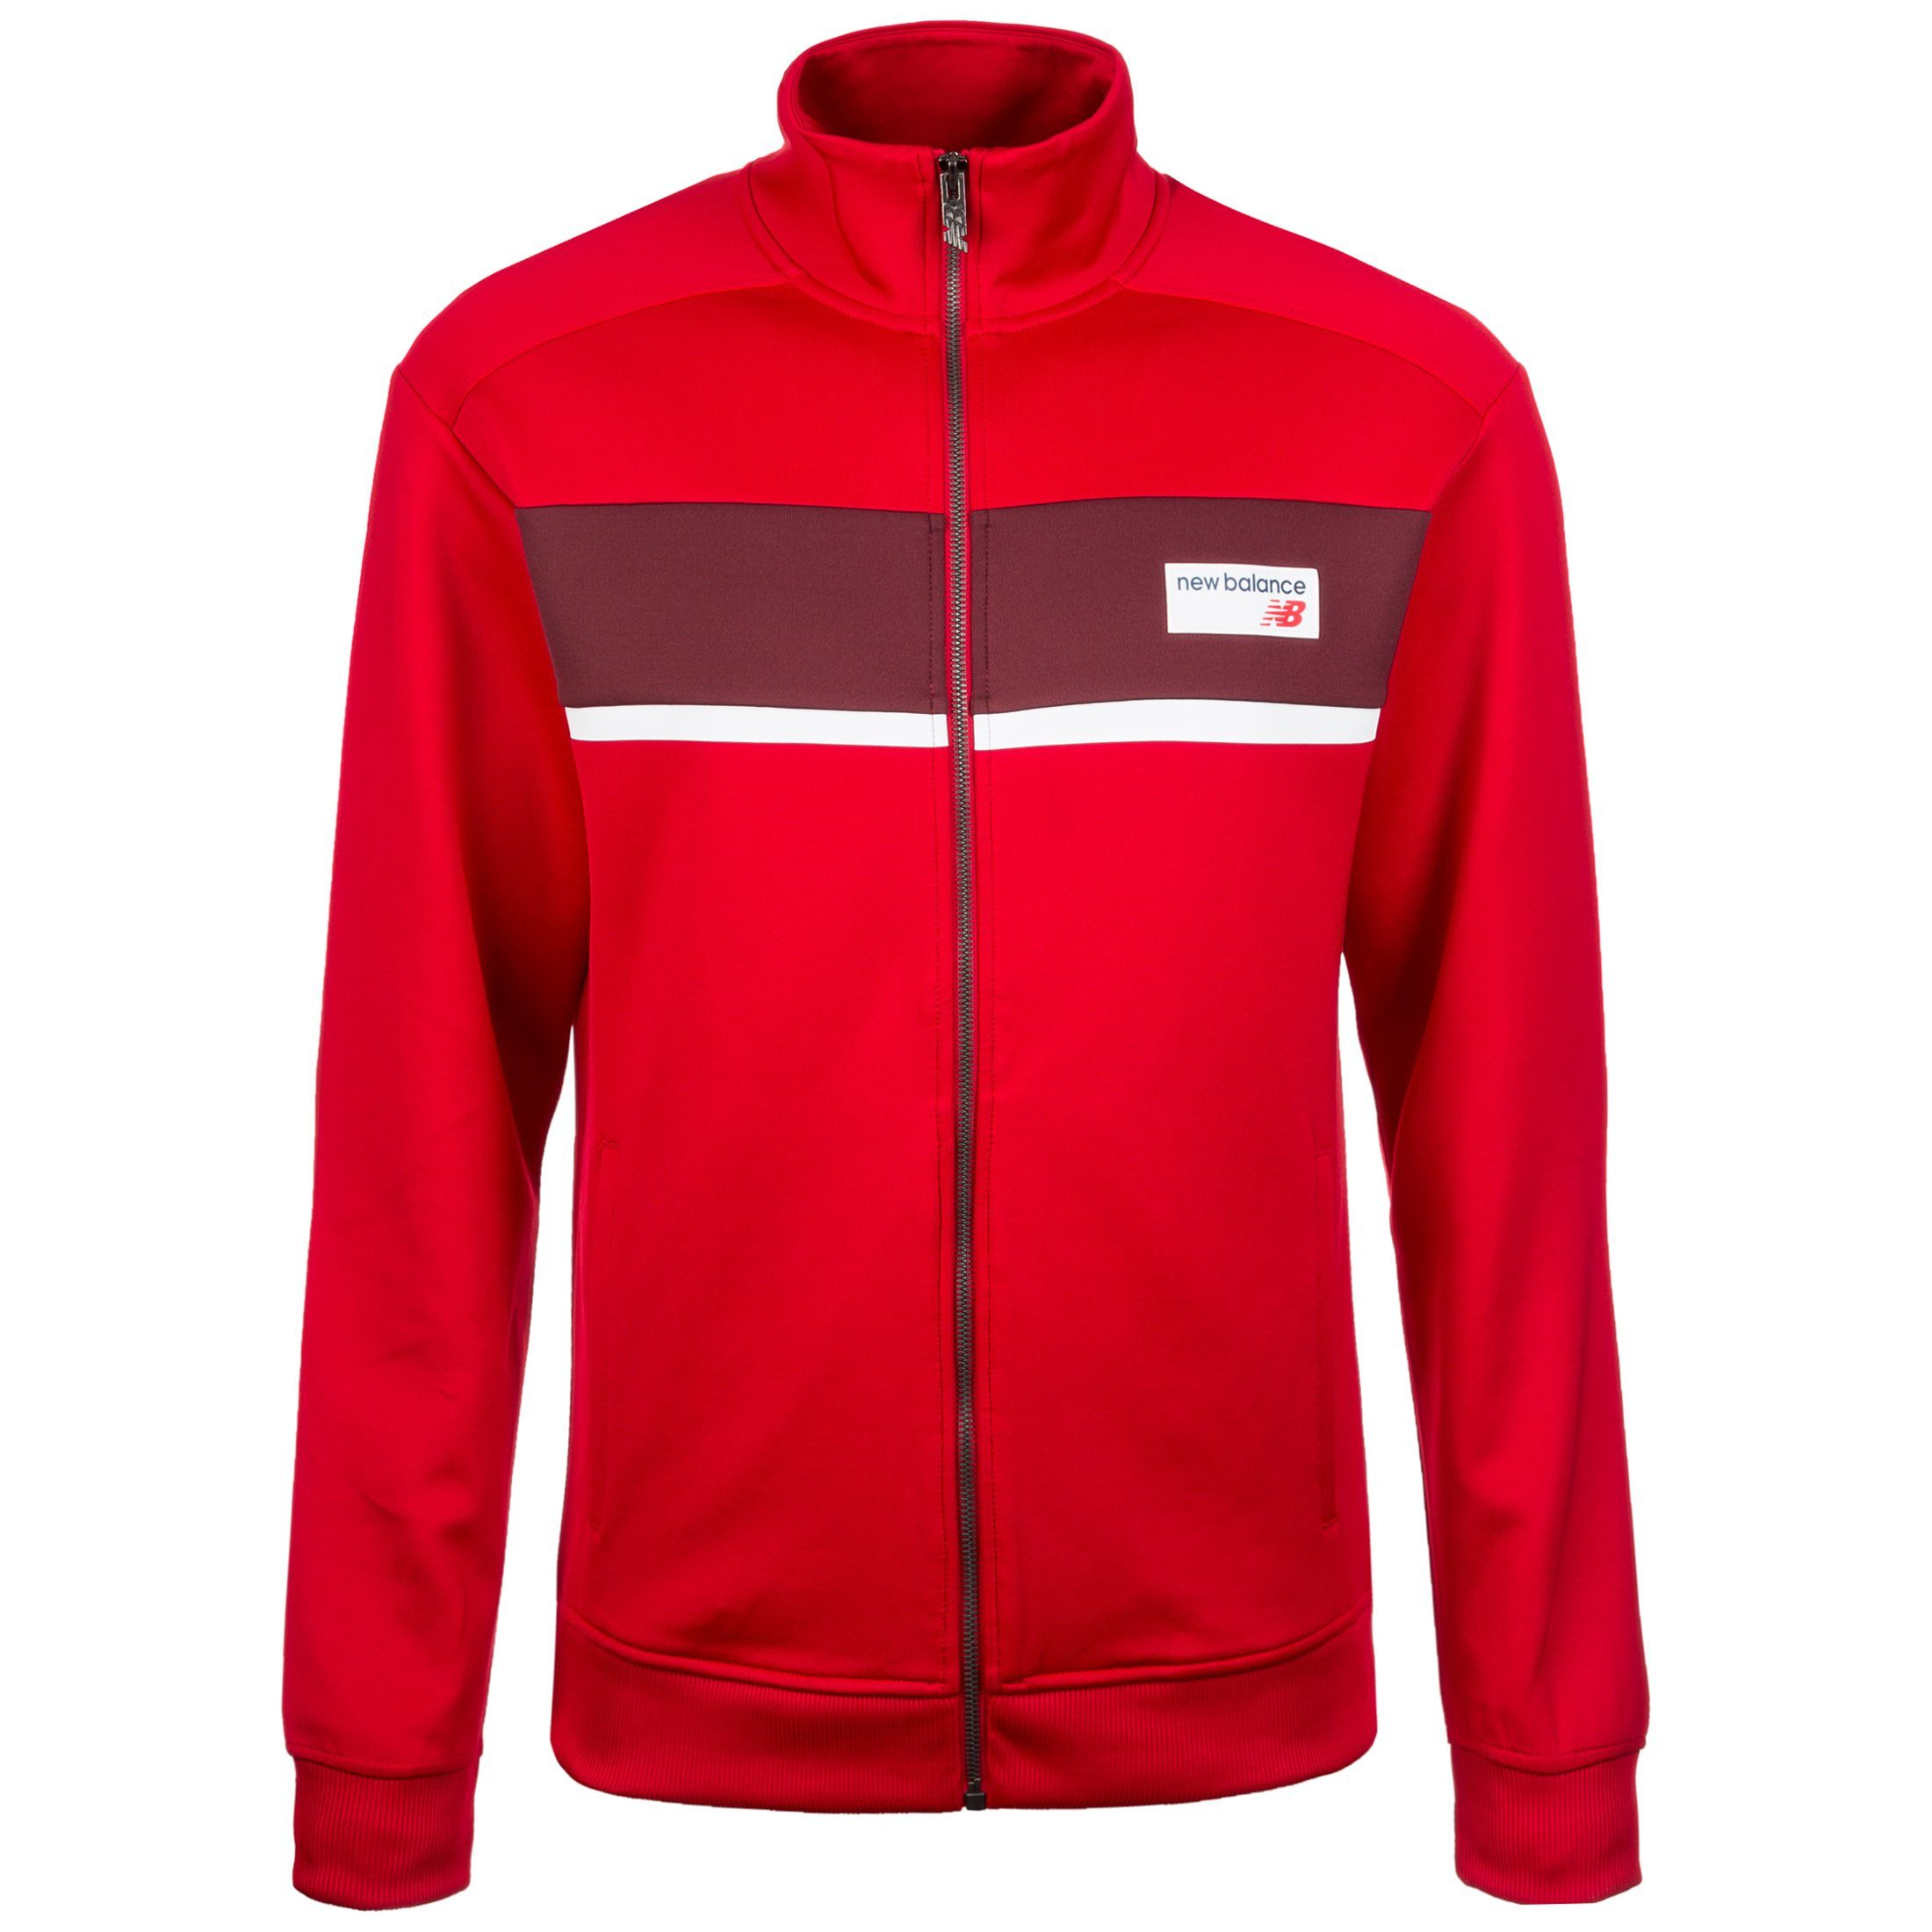 New Balance Walkjacke Athletics Track | Bekleidung > Jacken > Trainingsjacken | New Balance